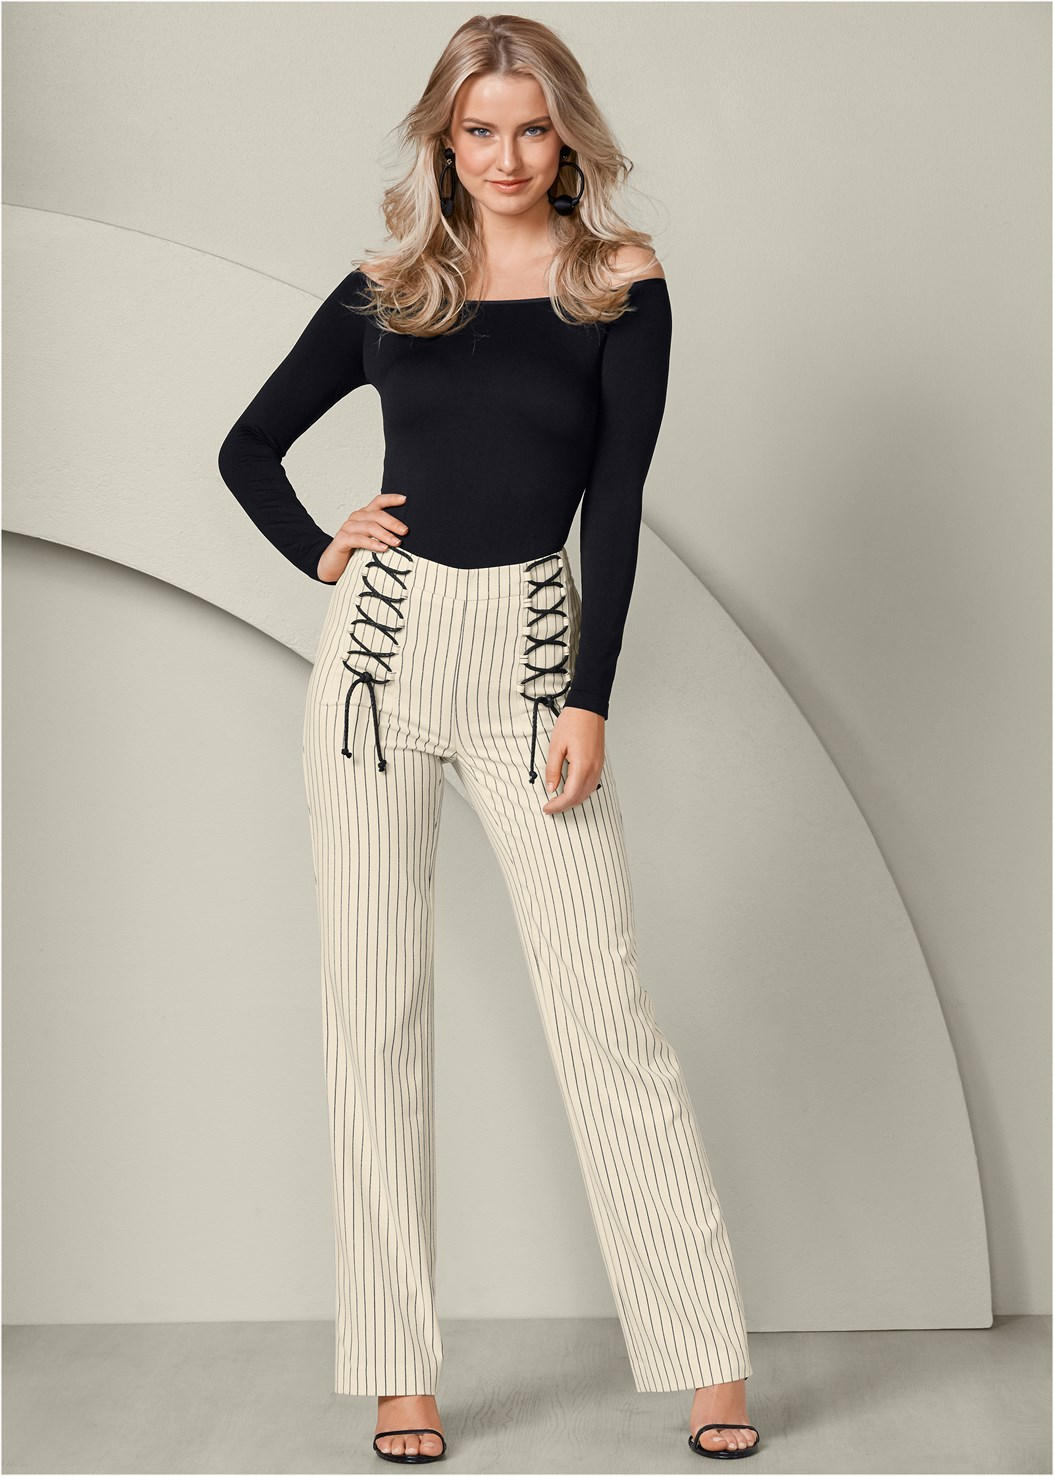 Lace Up Detail Pants,Off The Shoulder Top,High Heel Strappy Sandals,Bauble Hoop Earrings